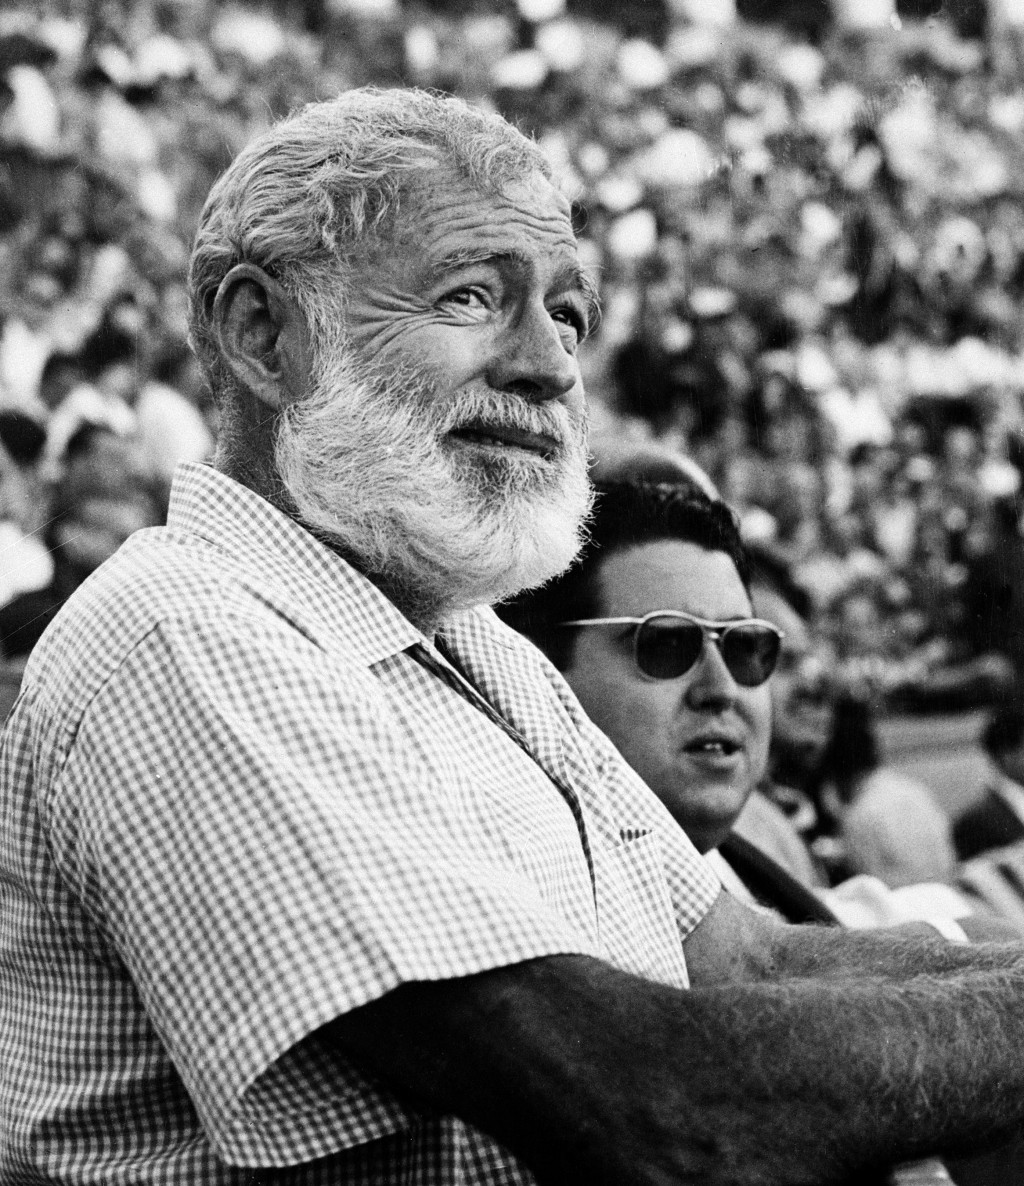 FILE - In this Nov. 1960 file photo, U.S. novelist Ernest Hemingway attends a bullfight in Madrid, Spain. Two Ernest Hemingway stories written in the